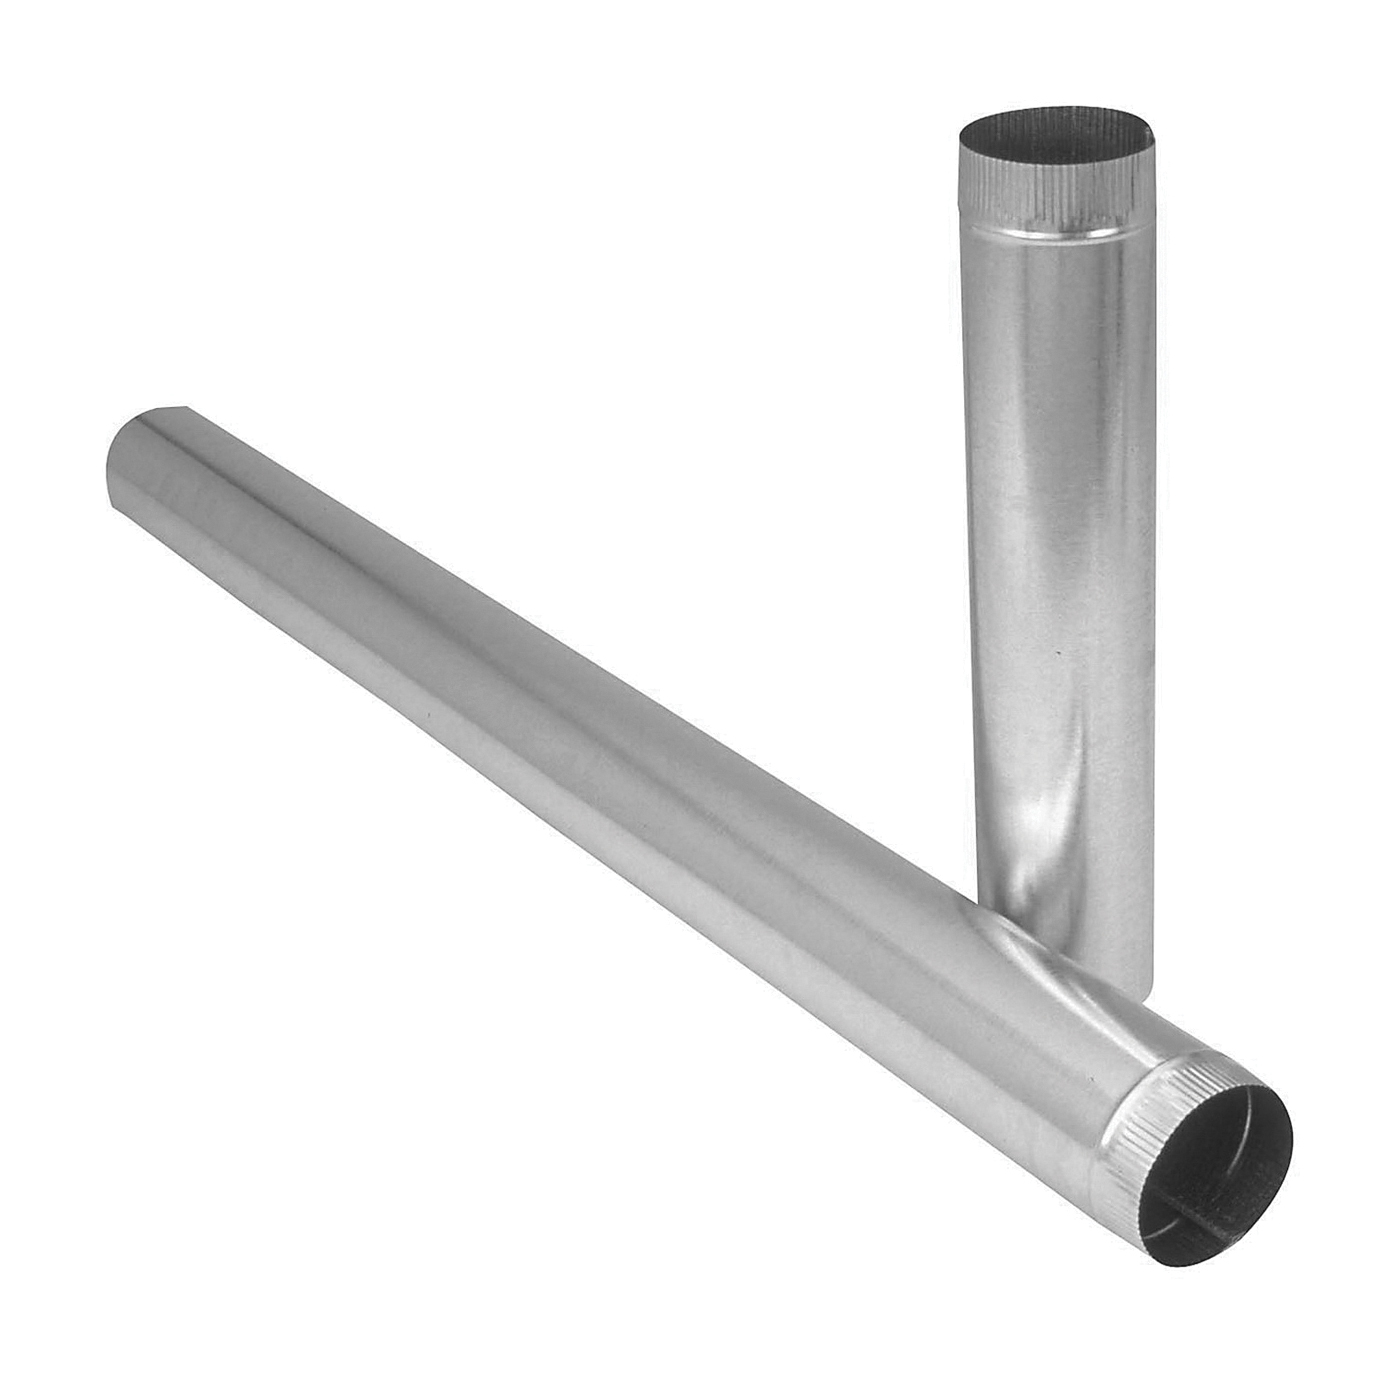 Picture of Imperial GV0393 Duct Pipe, 7 in Dia, 24 in L, 24 Gauge, Galvanized Steel, Galvanized